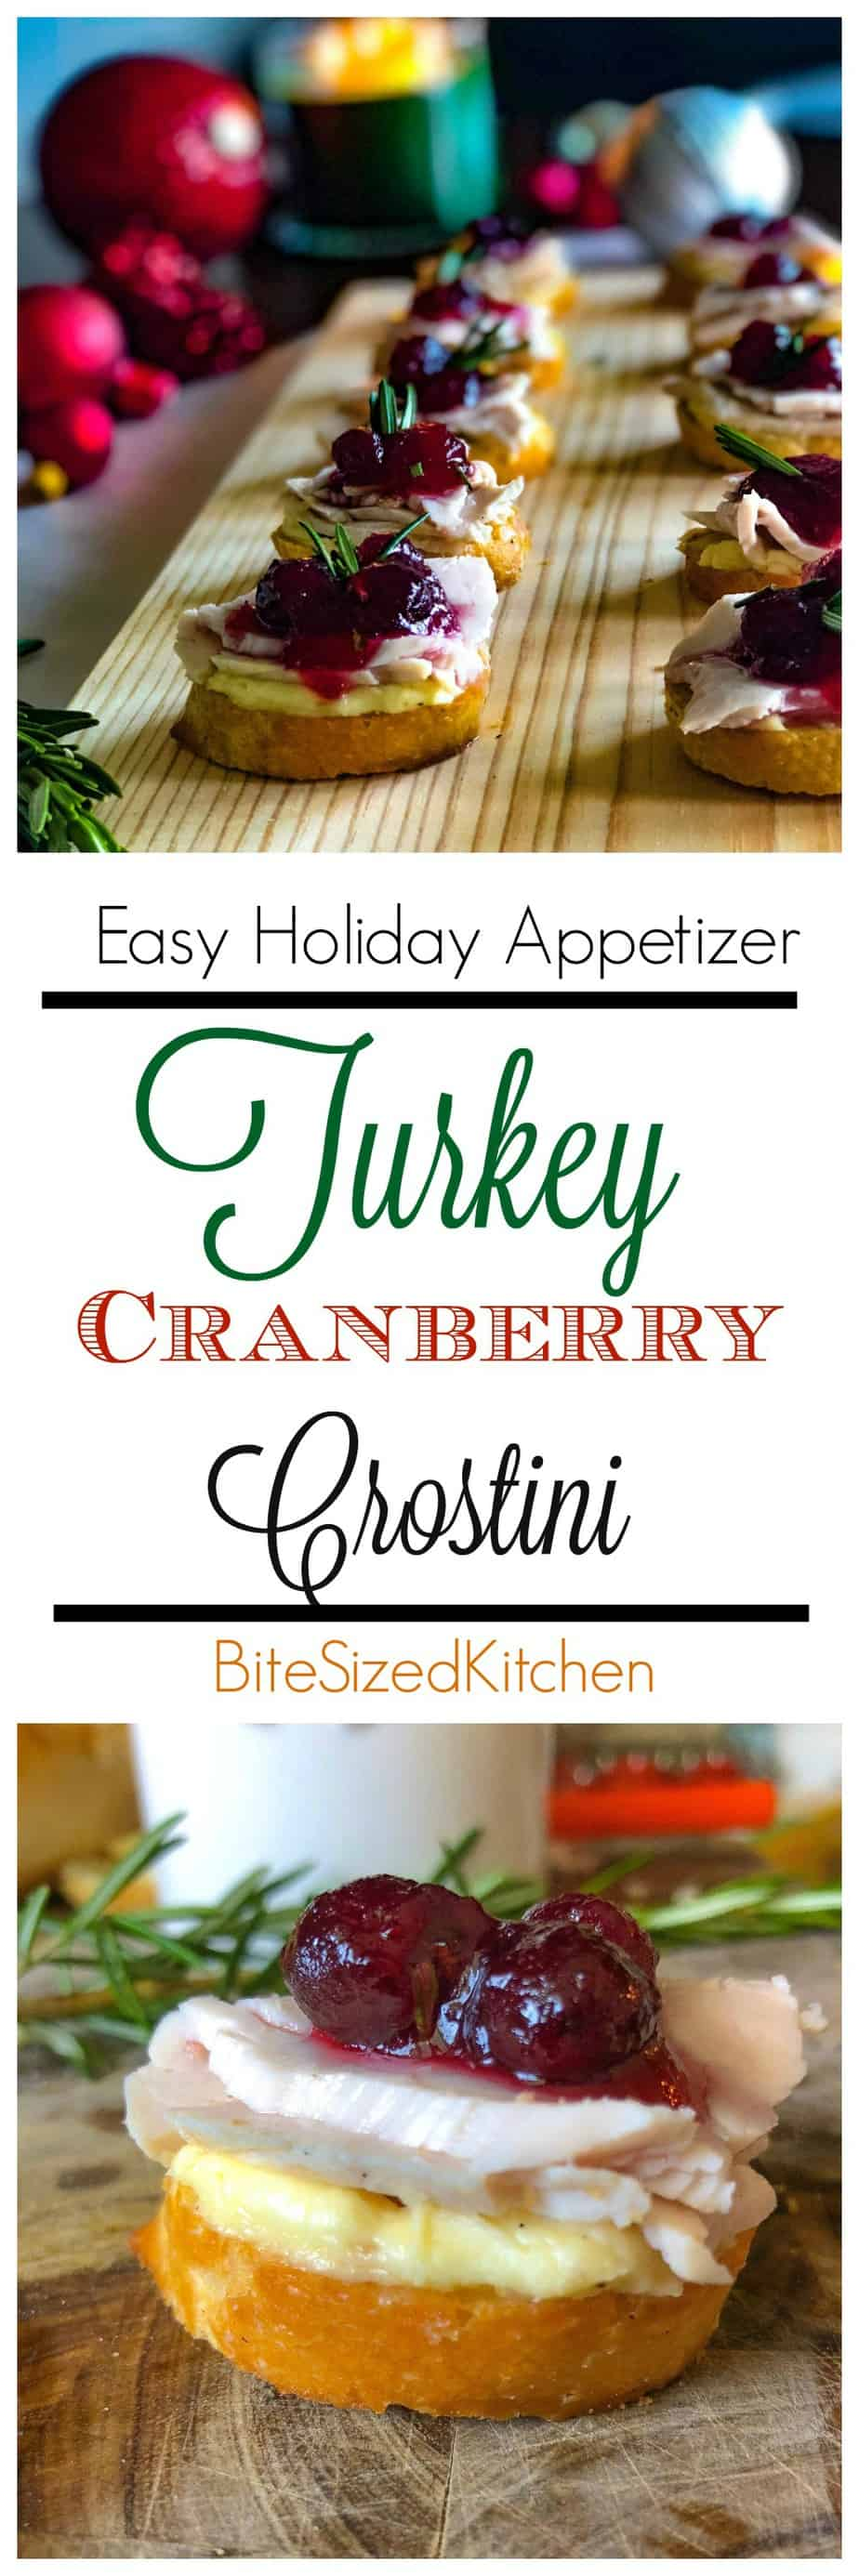 As easy and creative Christmas or Thanksgiving appetizer! Finger foods are great for a crowd and are an elegant make ahead bite size appetizer idea!